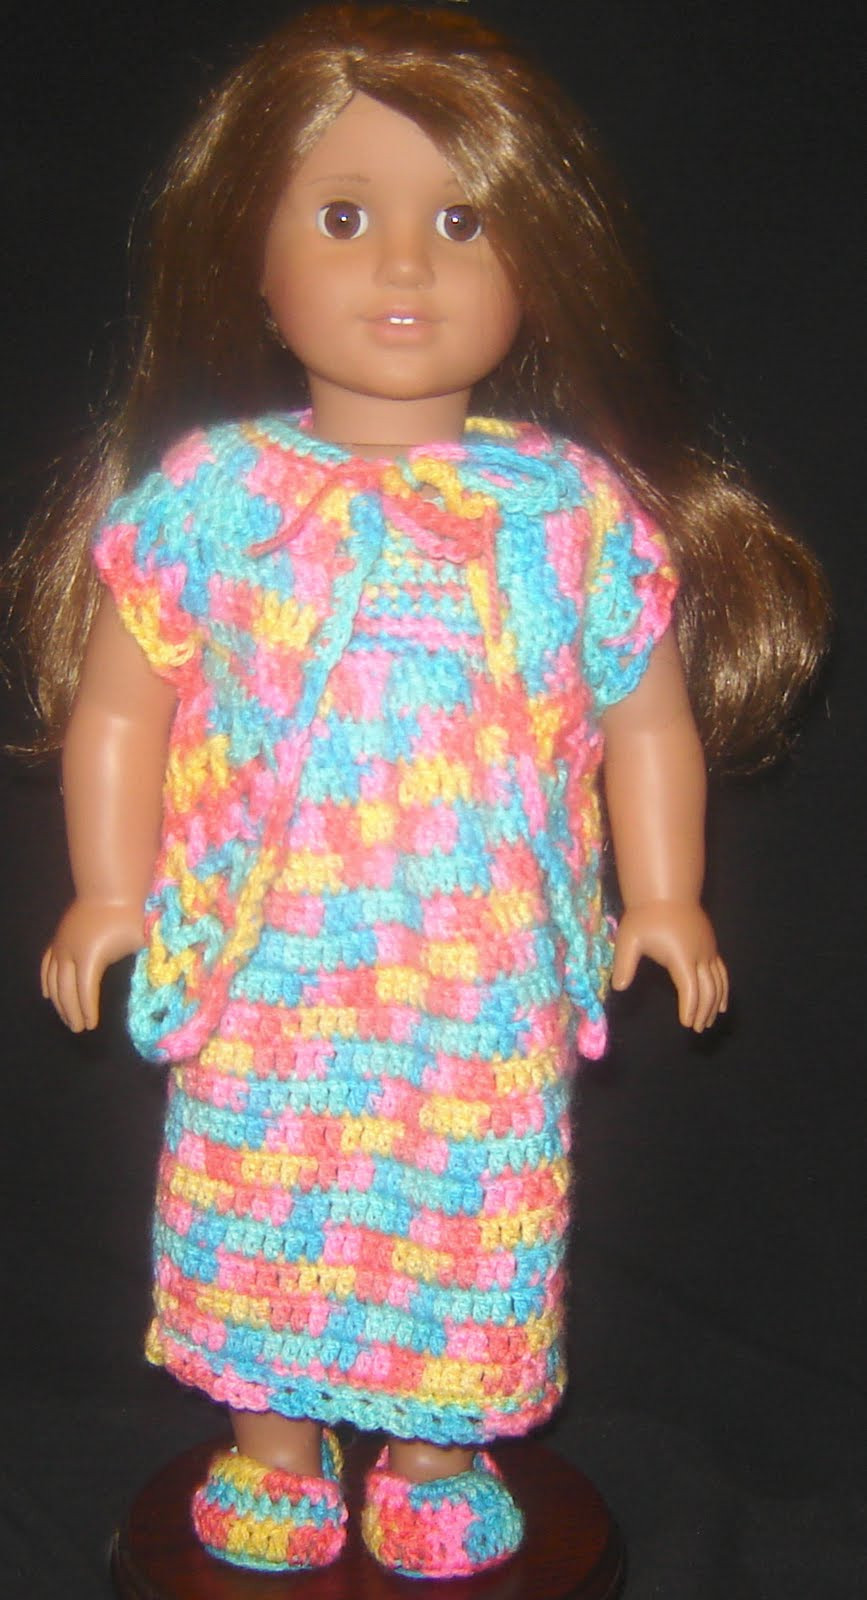 """Crochet Doll Clothes Unique Bizzy Crochet Nightie Robe & Slippers 18"""" Doll Clothes Of Fresh 48 Images Crochet Doll Clothes"""